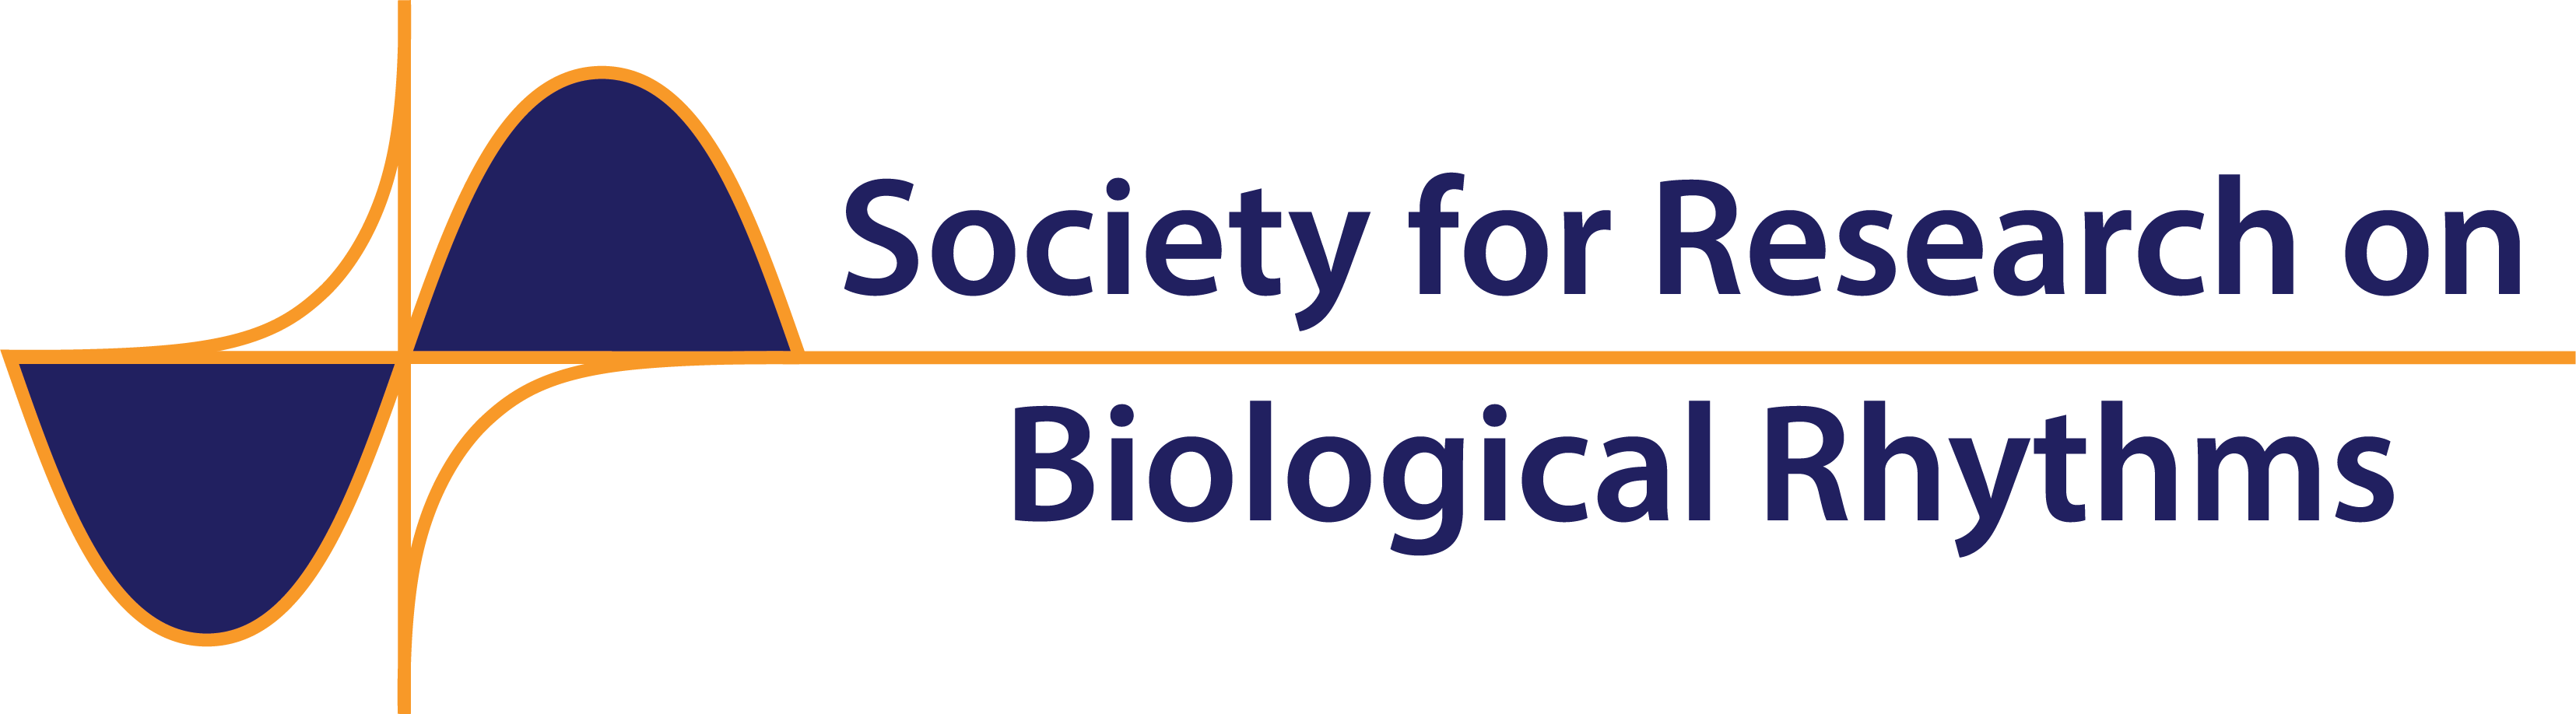 Society for Research on Biological Rhythms